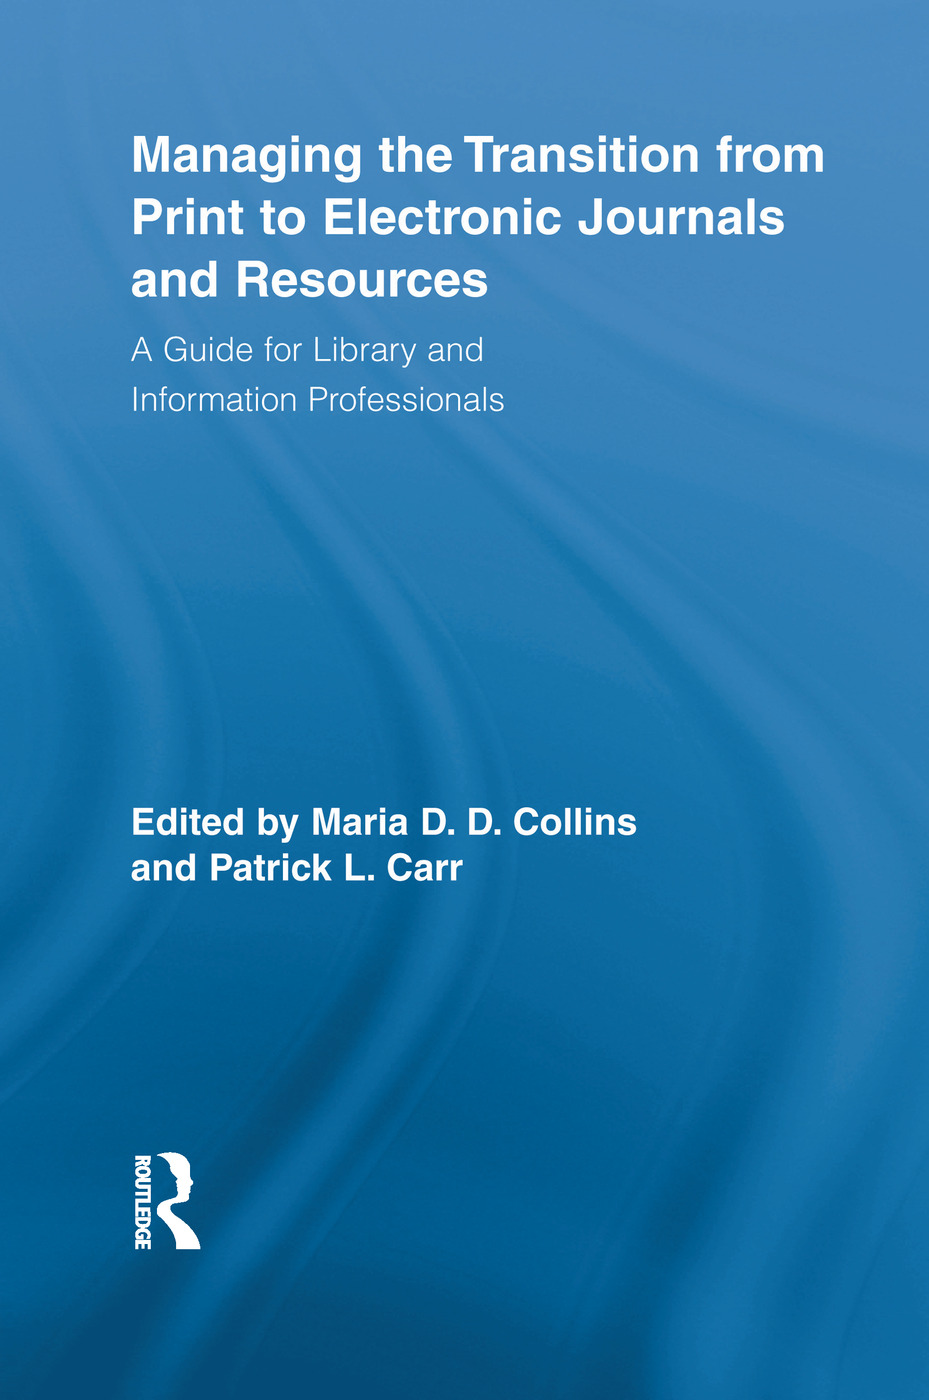 Managing the Transition from Print to Electronic Journals and Resources: A Guide for Library and Information Professionals book cover